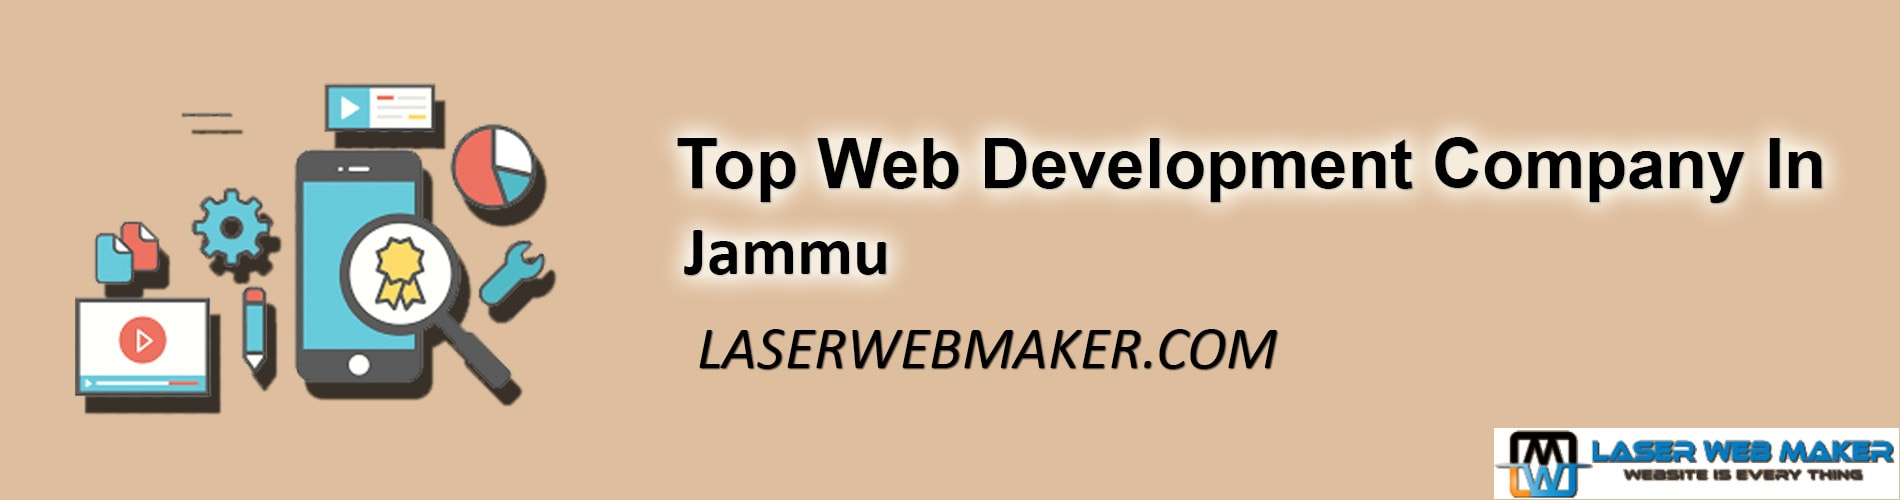 Top Web Development Company In Jammu